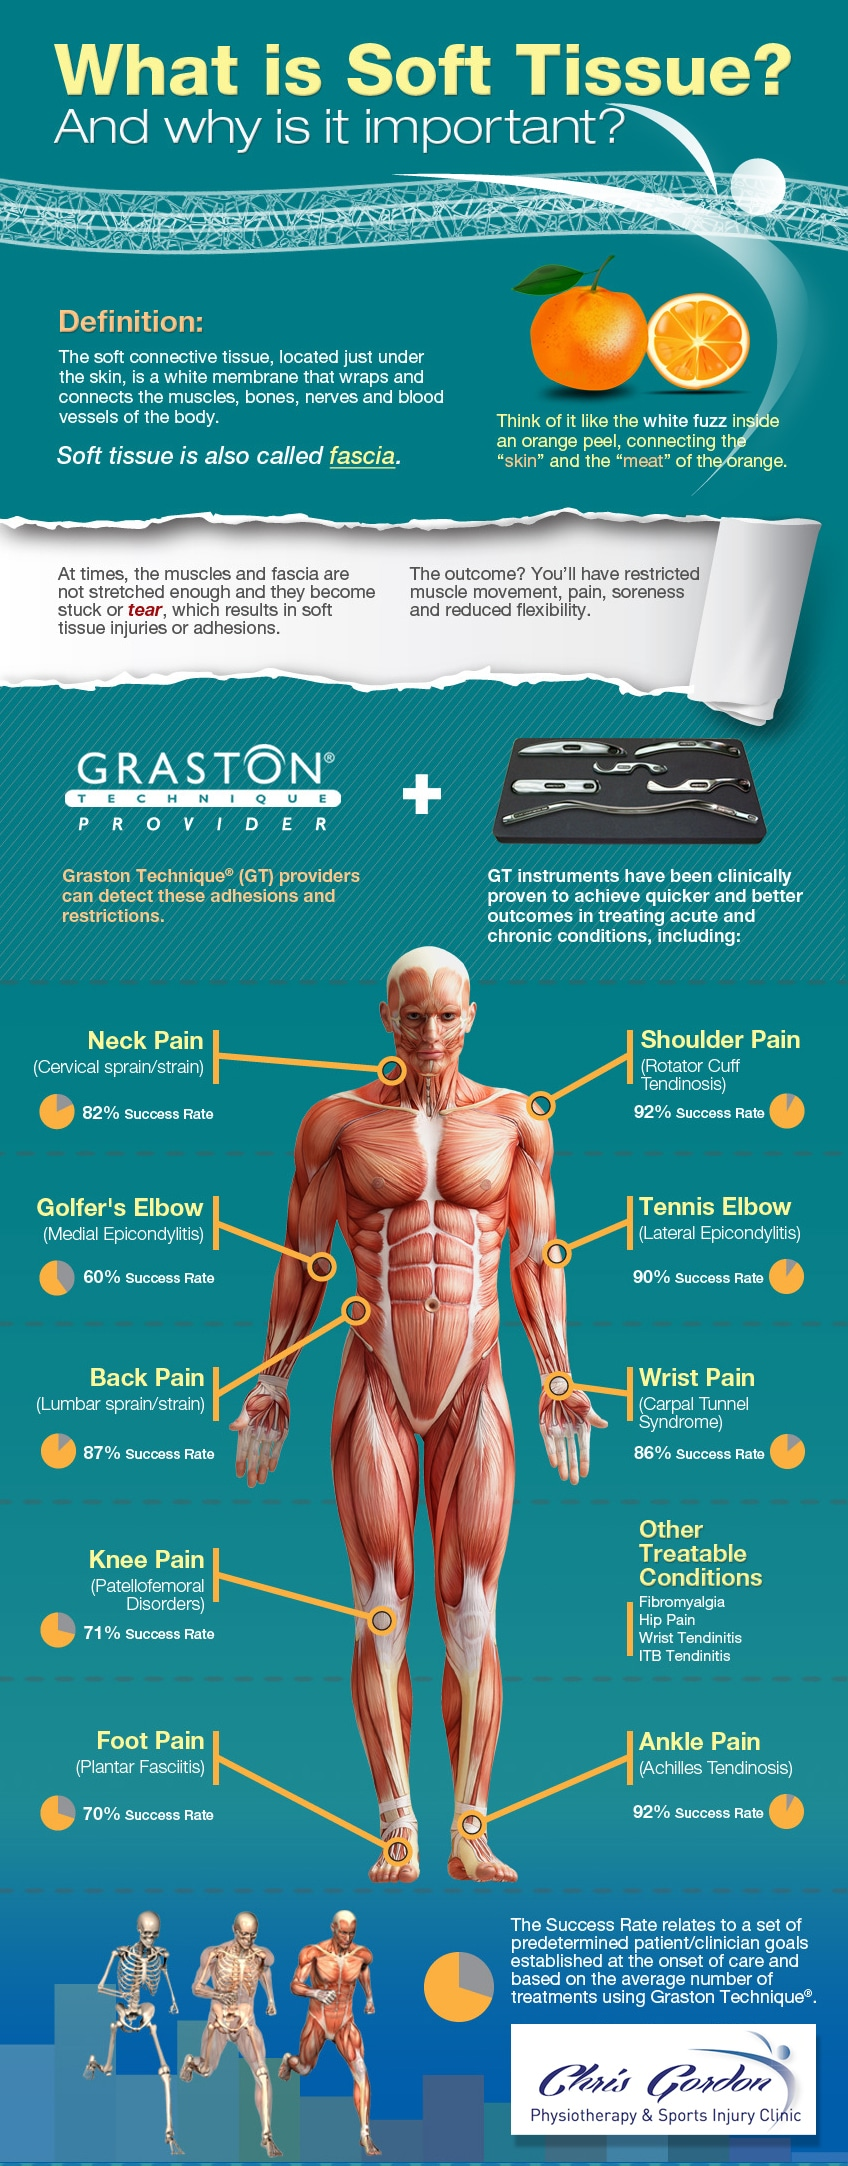 graston-what-is-soft-tissue